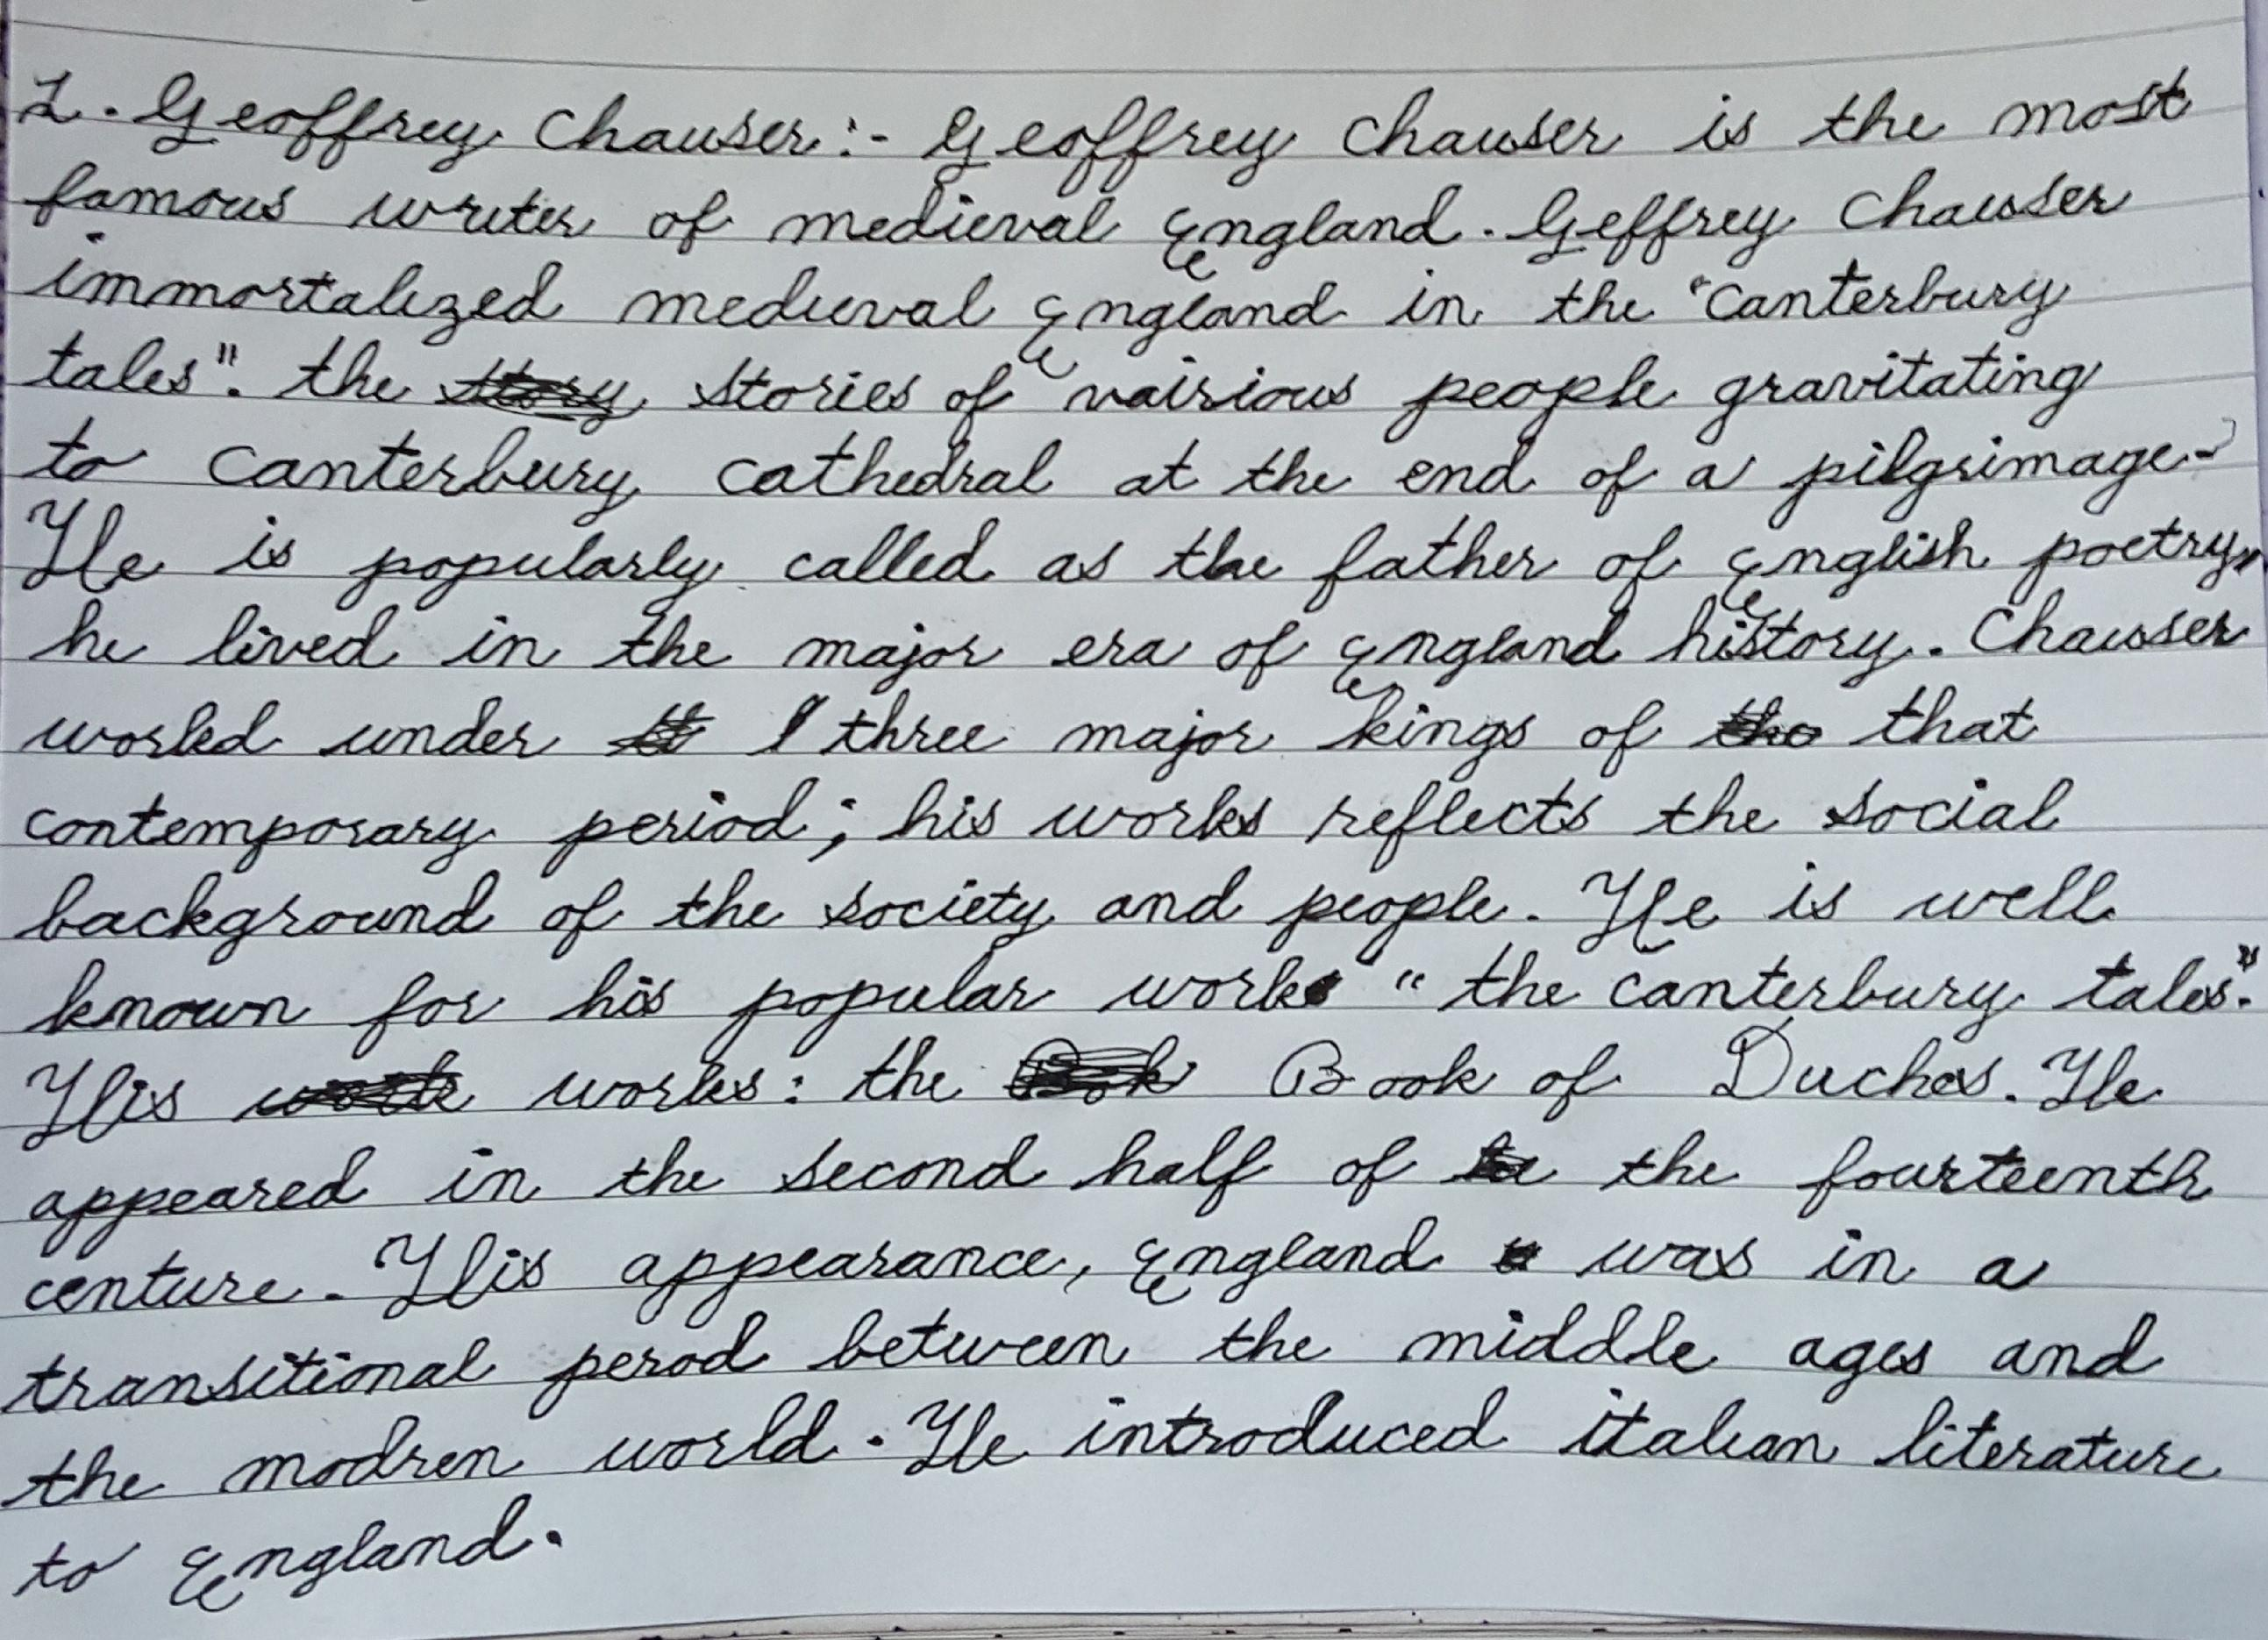 My Daily Cursive Handwriting What Is Your Opinion About